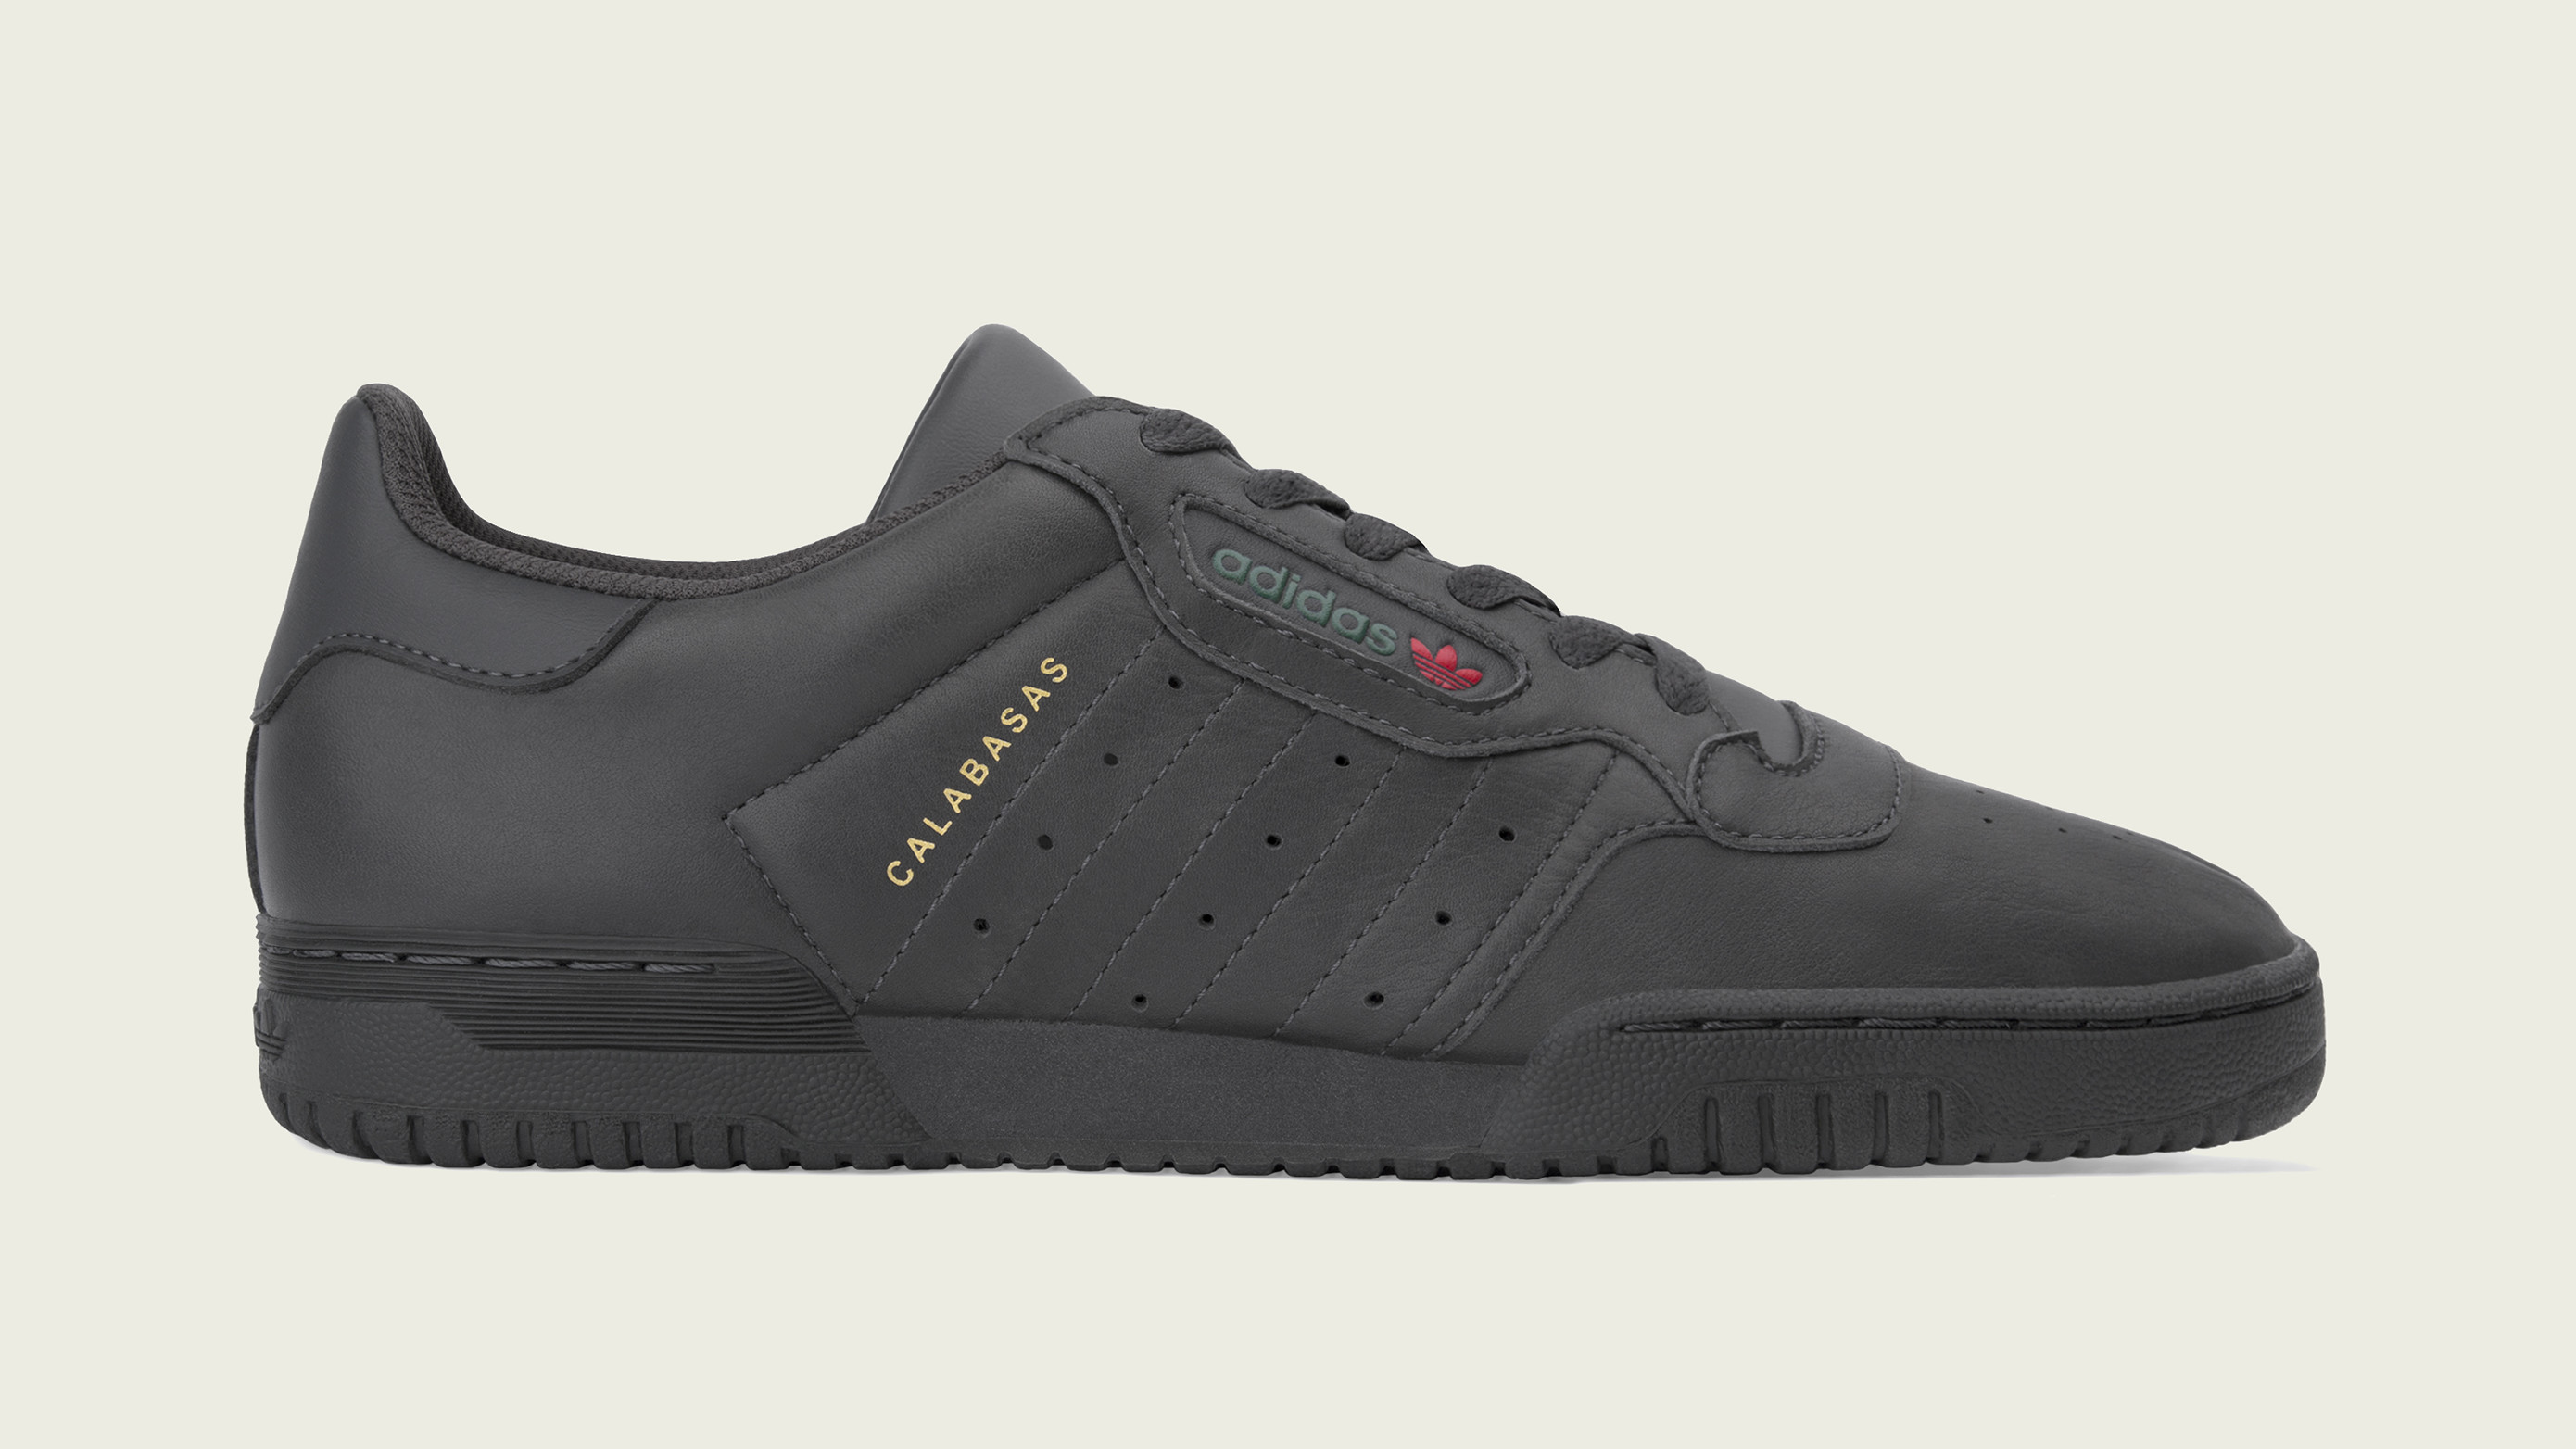 e9301a39b Where To Buy Black Adidas Yeezy Powerphase Calabasas